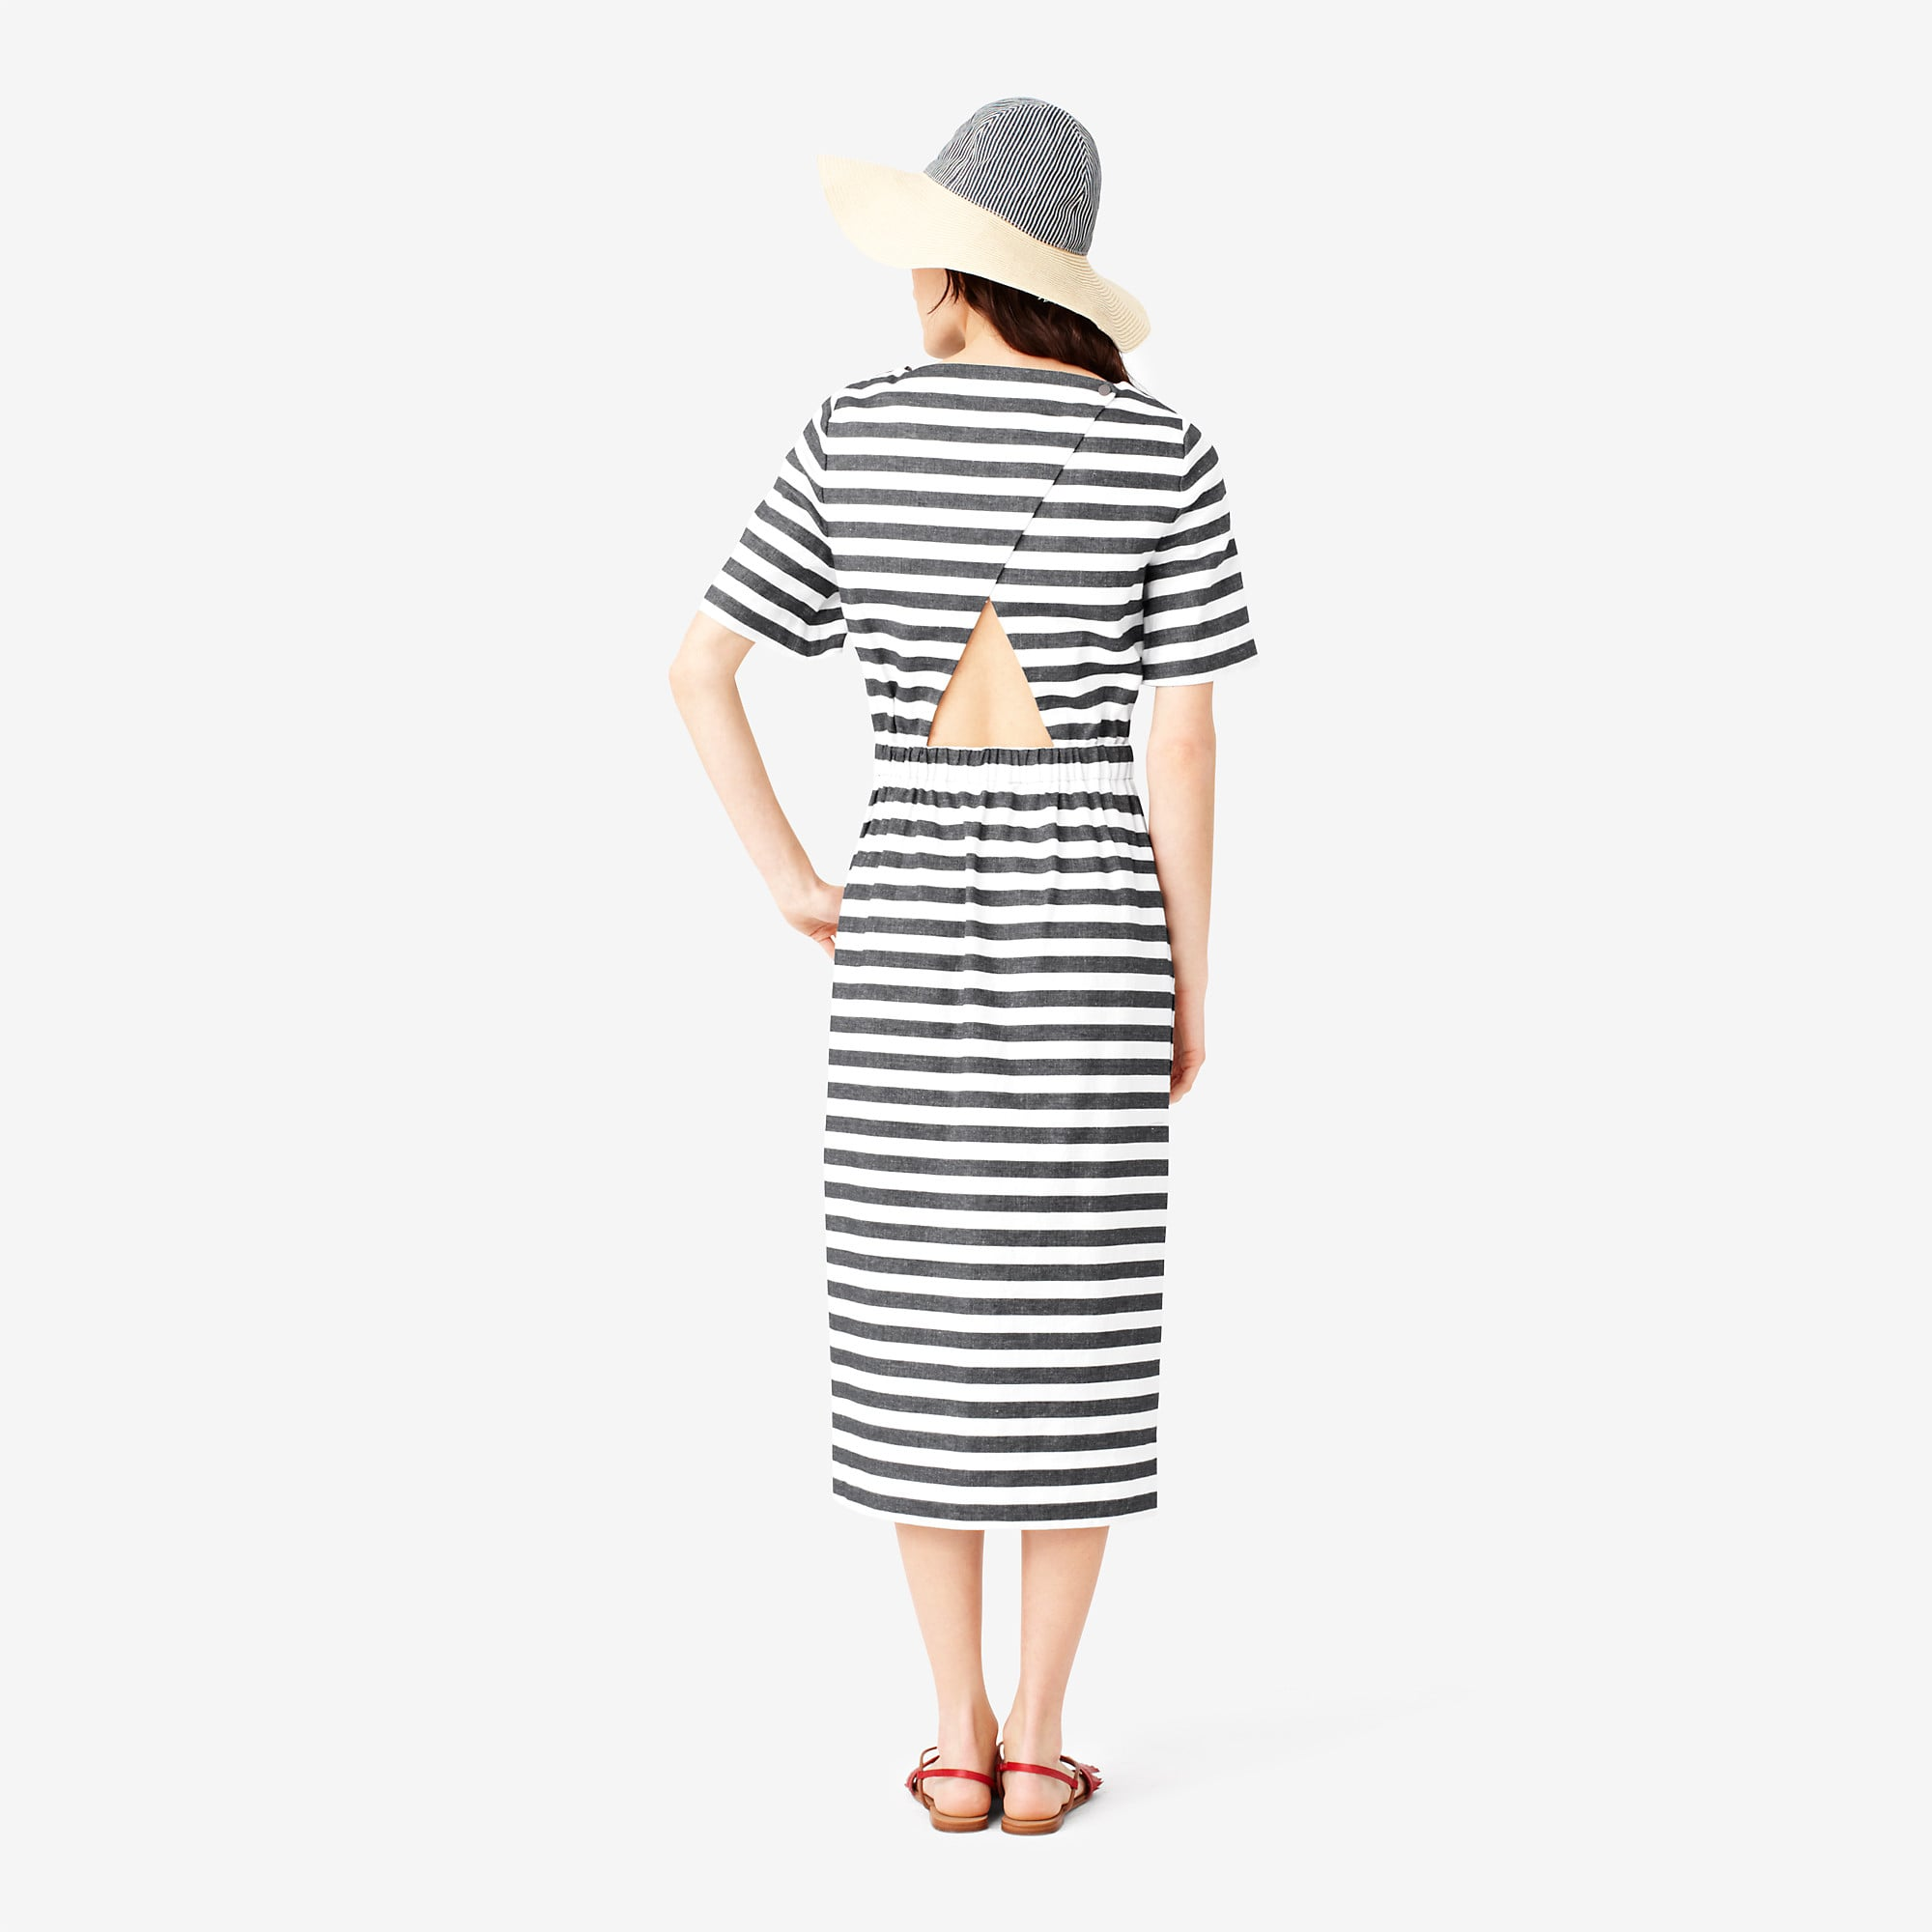 Kate Spade Saturday Striped Dress